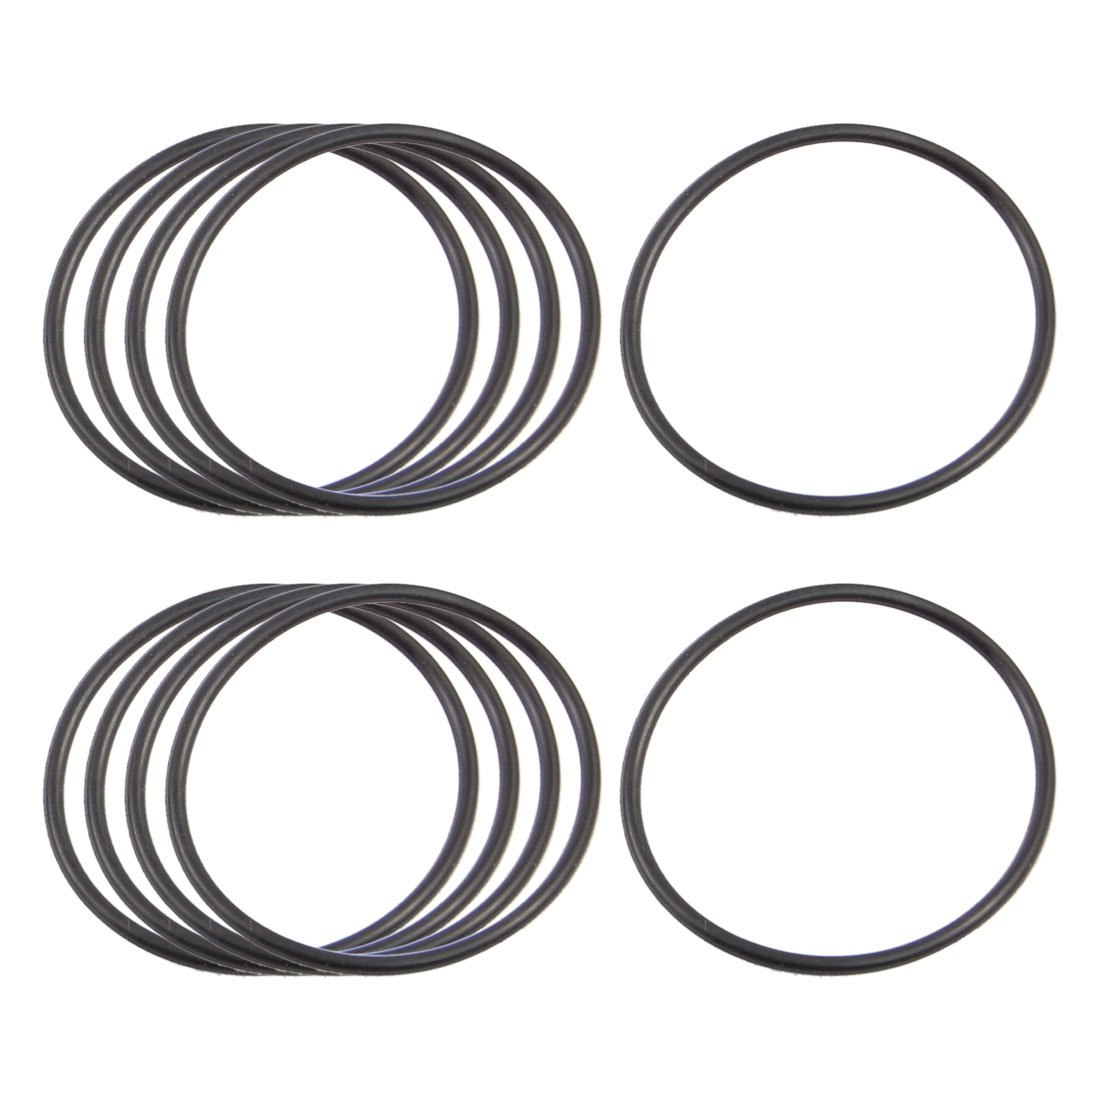 rubber sealing rings images